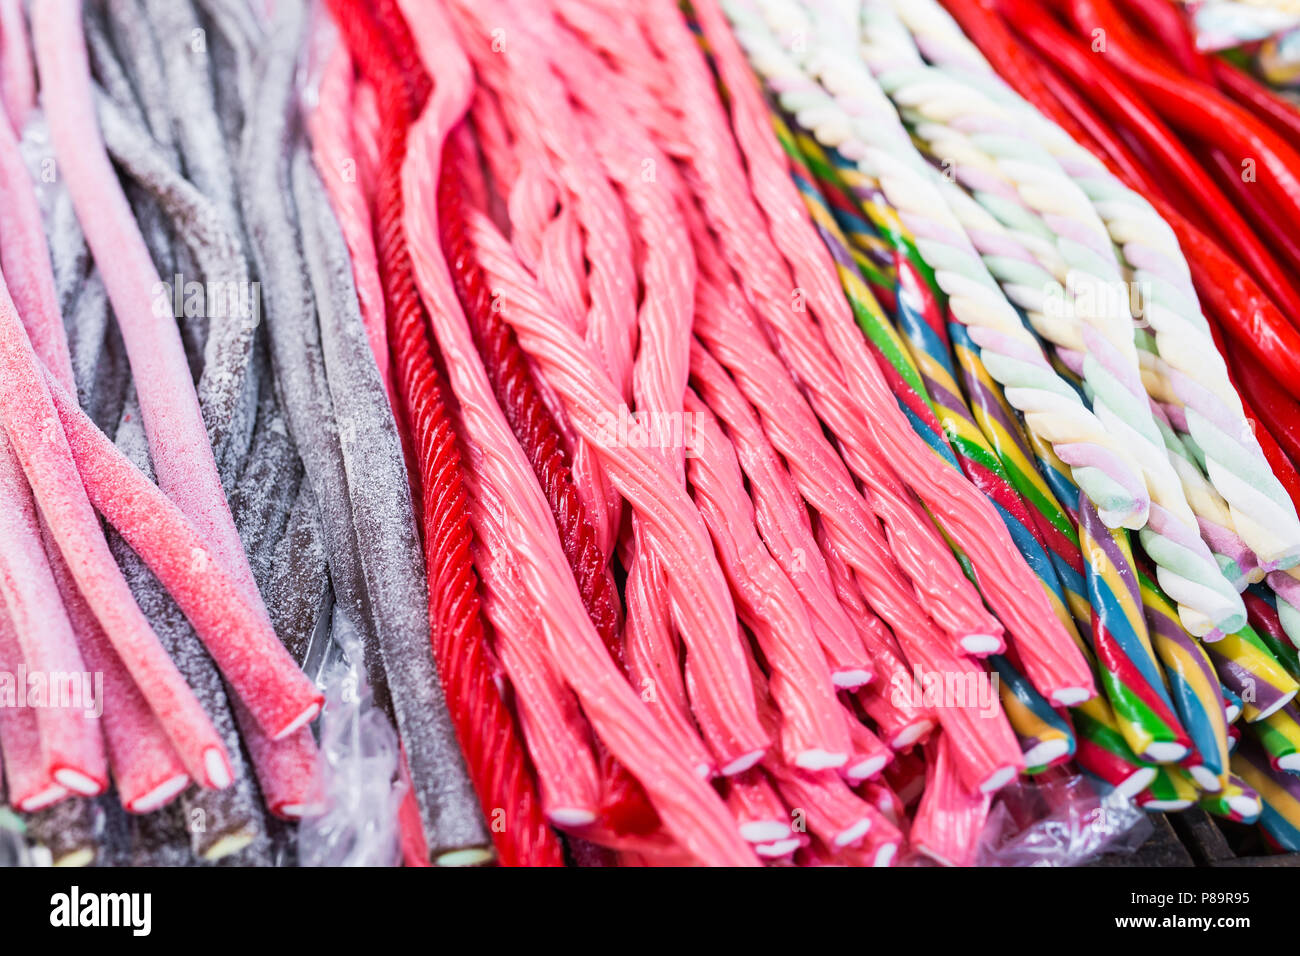 Candy sticks in any color and appearance. - Stock Image